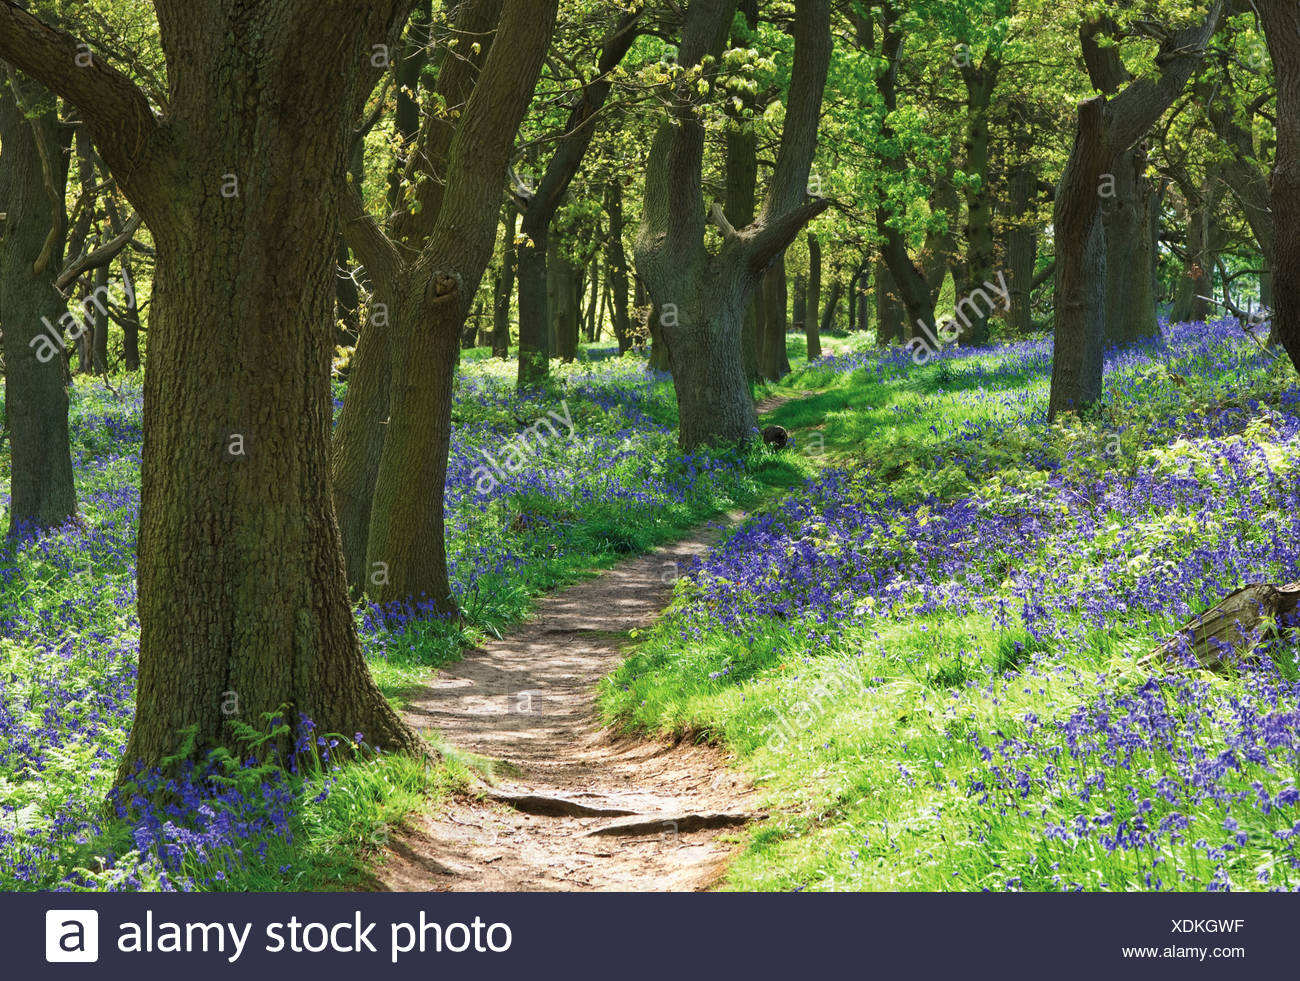 Hyacinthoides non-scripta, Bluebell wood - Stock Image